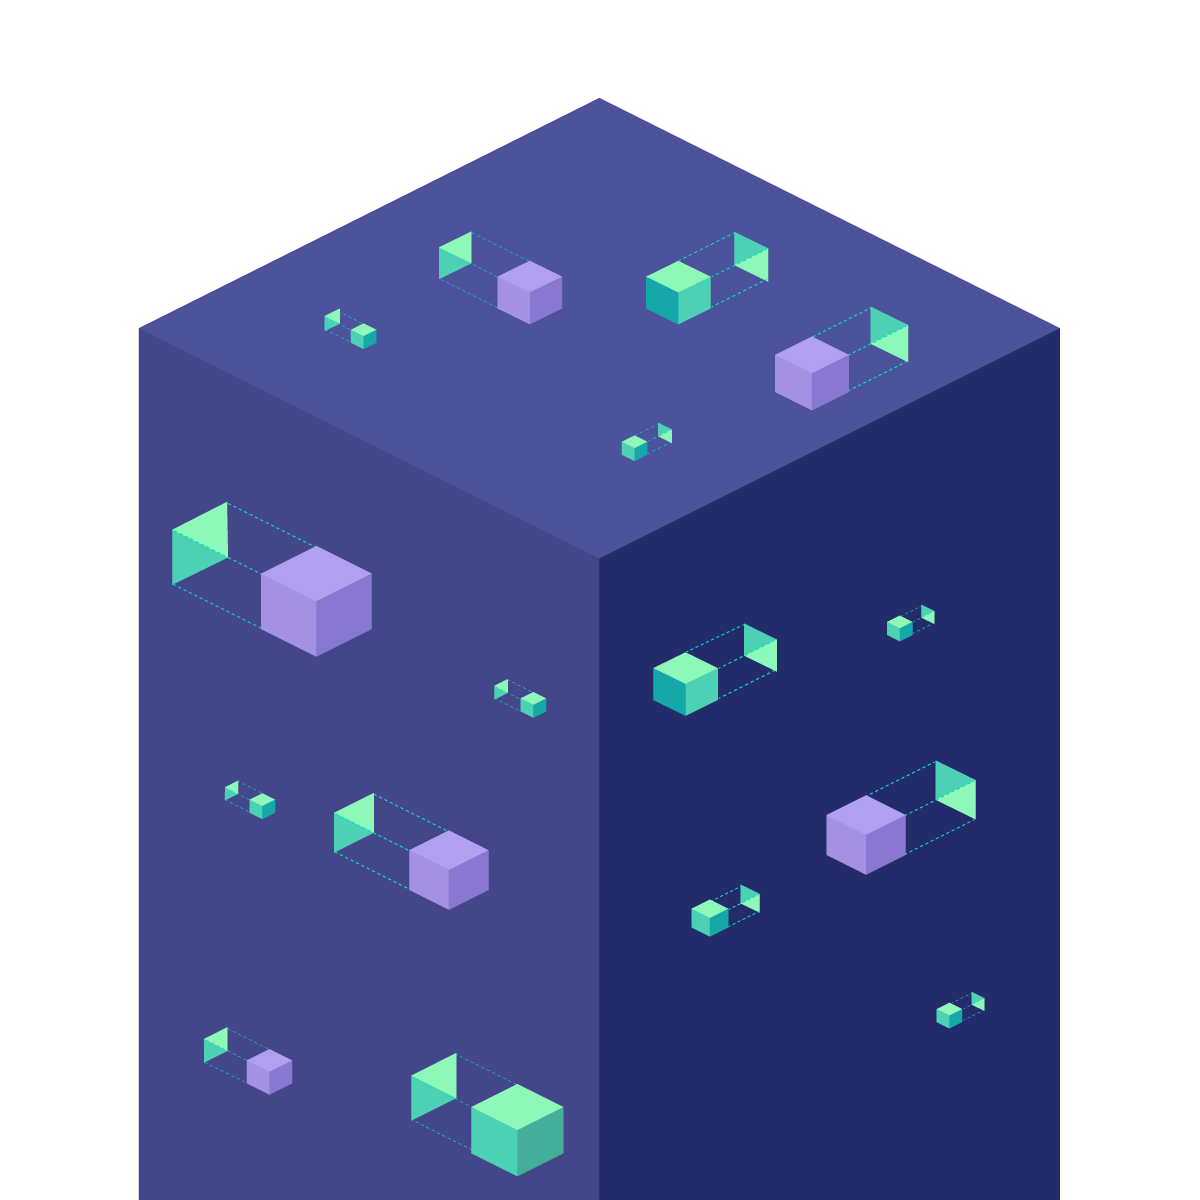 big and small boxes in a cuboid